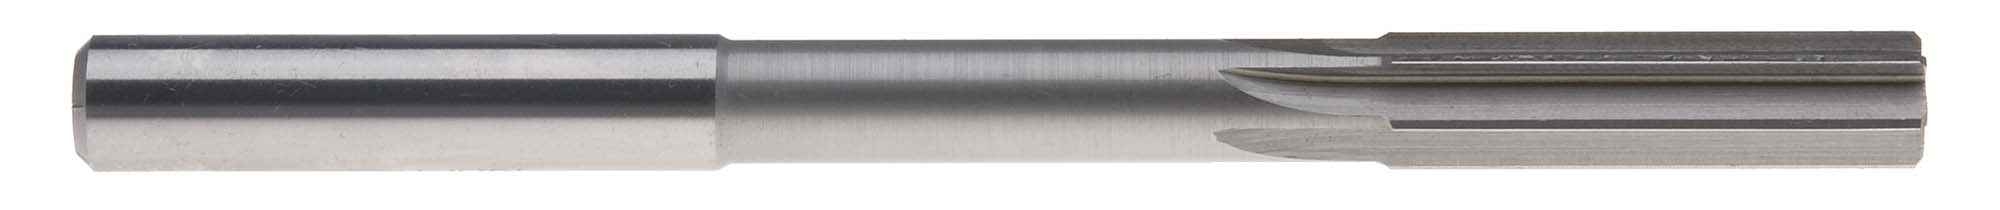 23mm Metric Chucking Reamer, High Speed Steel